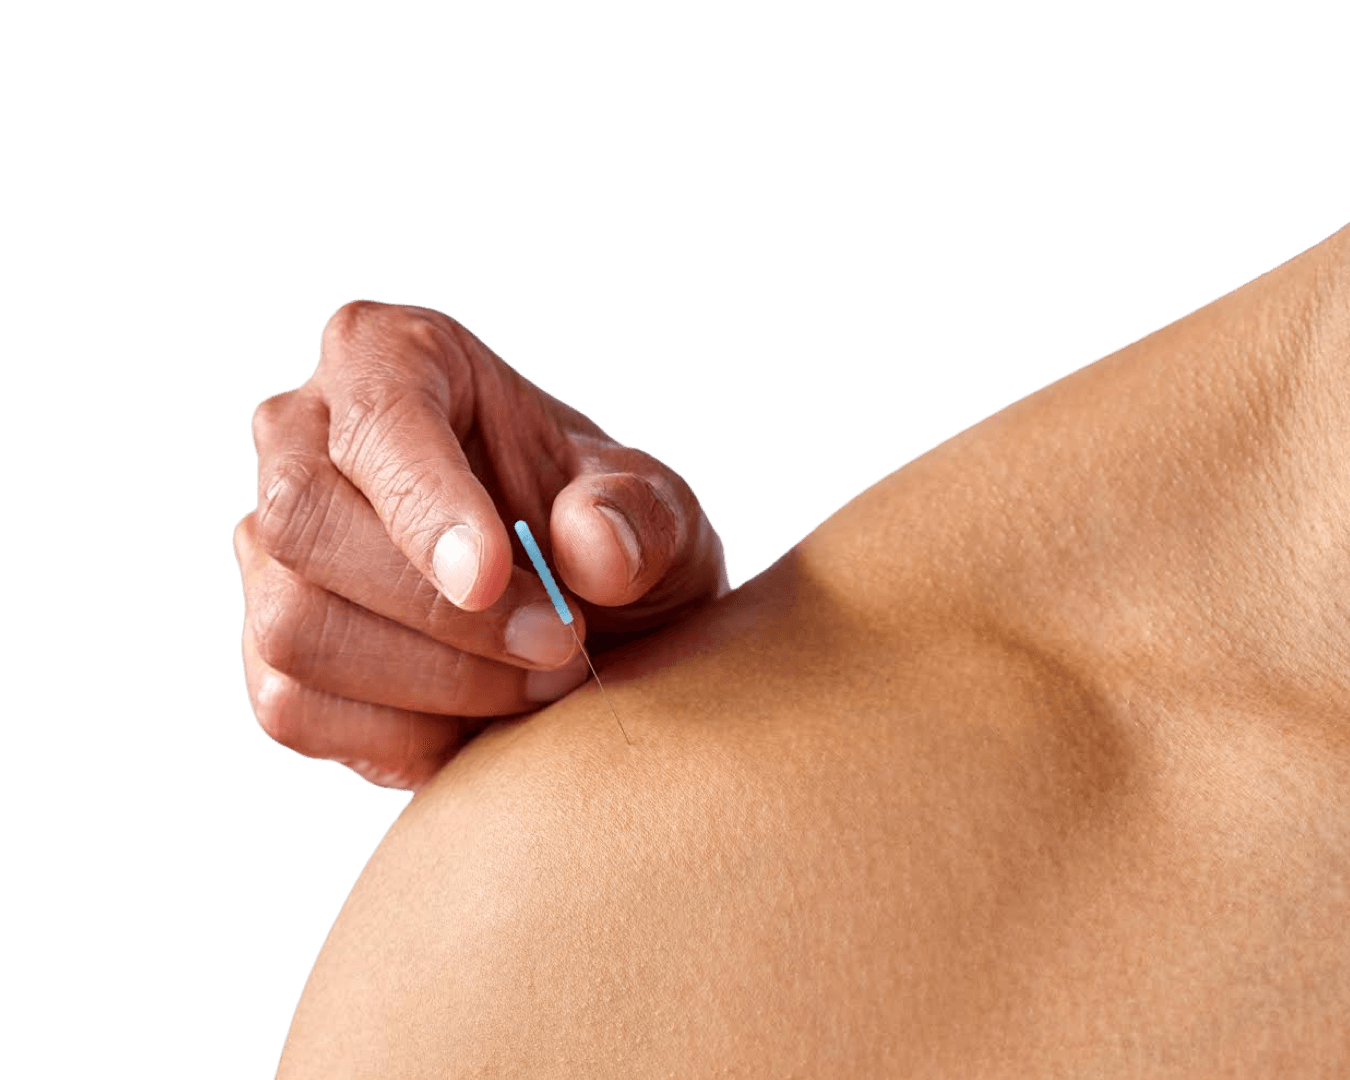 Dr. Rances performing acupuncture on shoulder